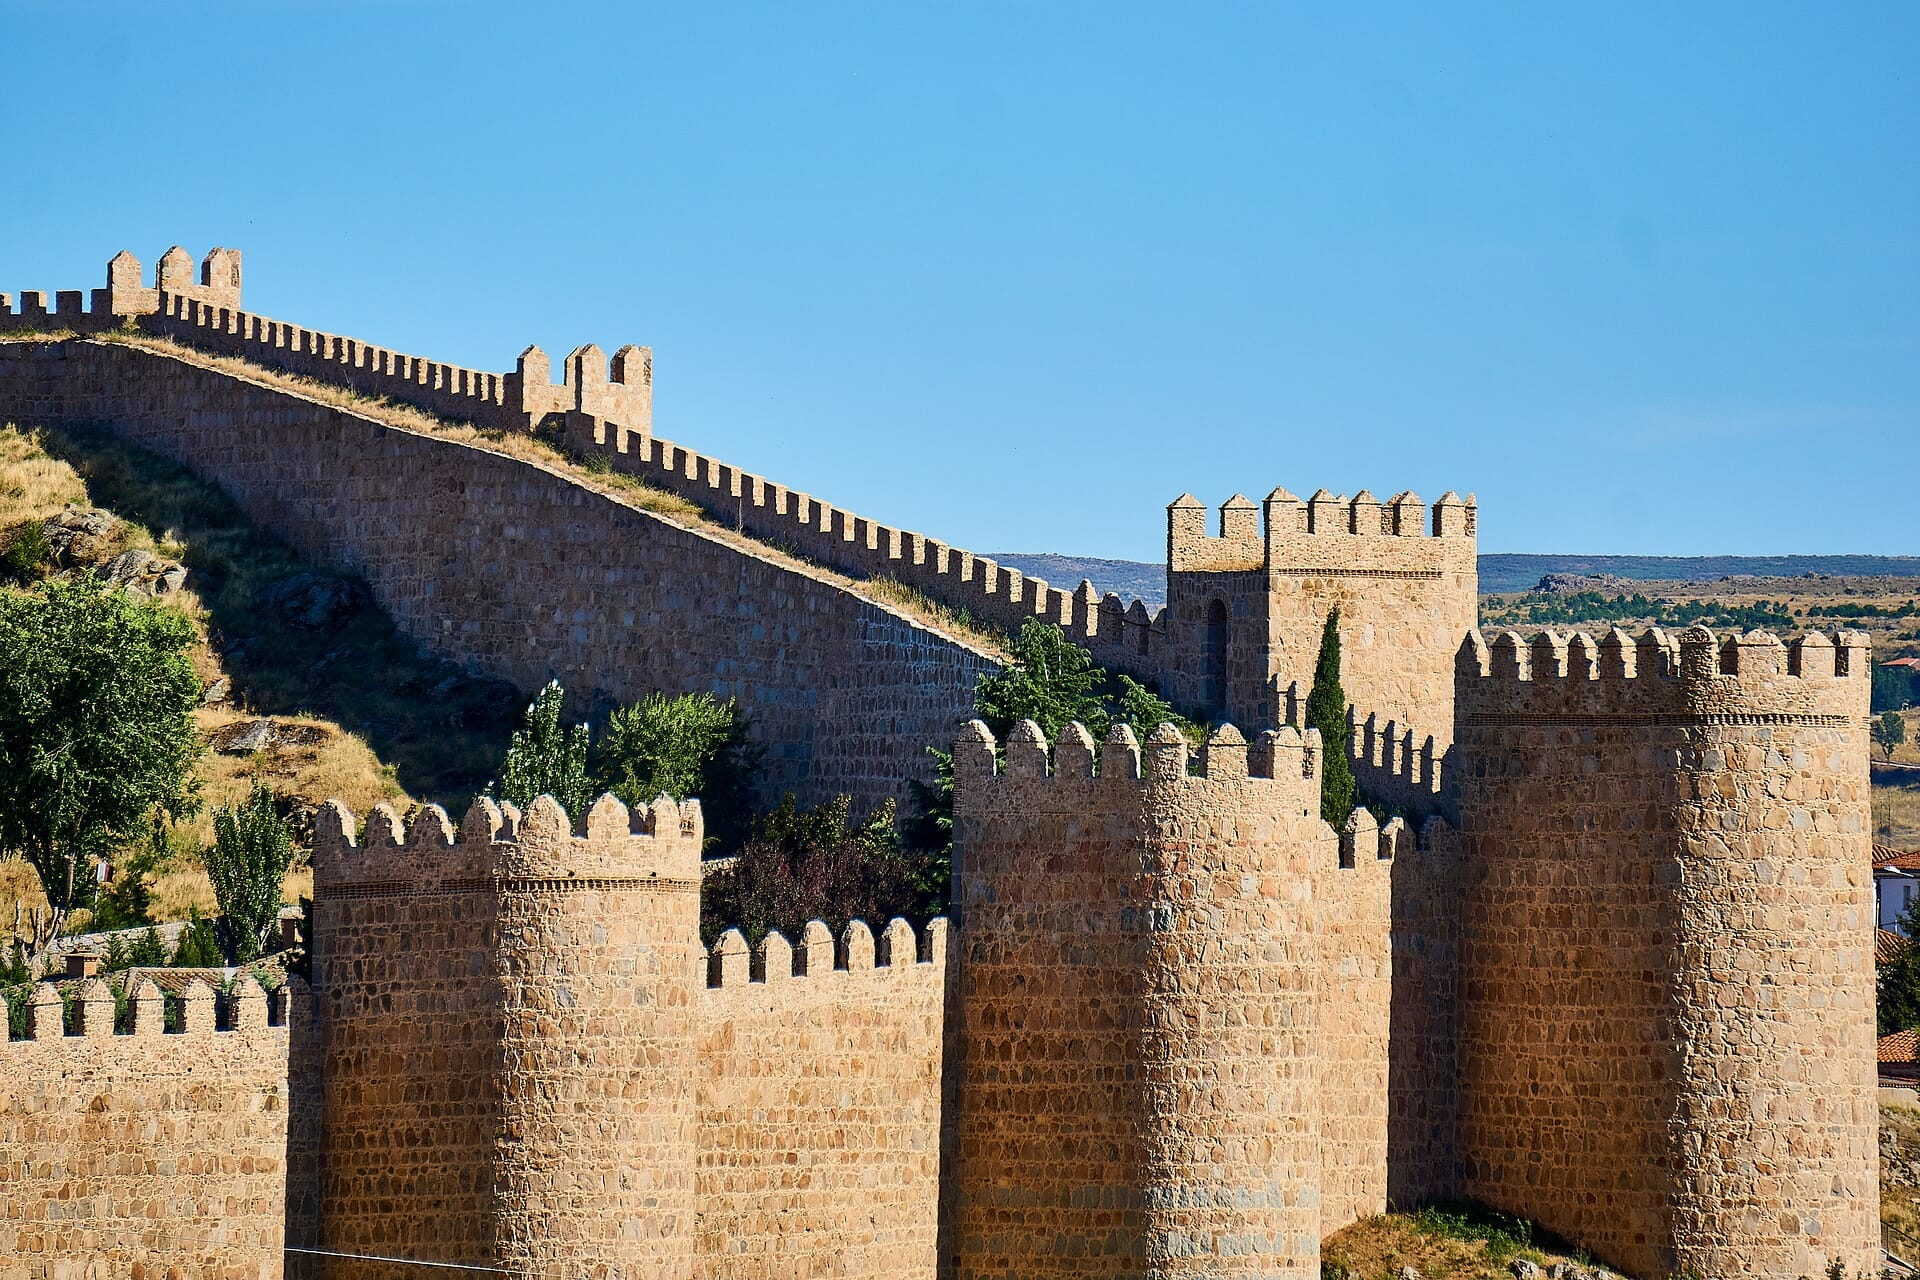 Towering Avila wall on this sunny day